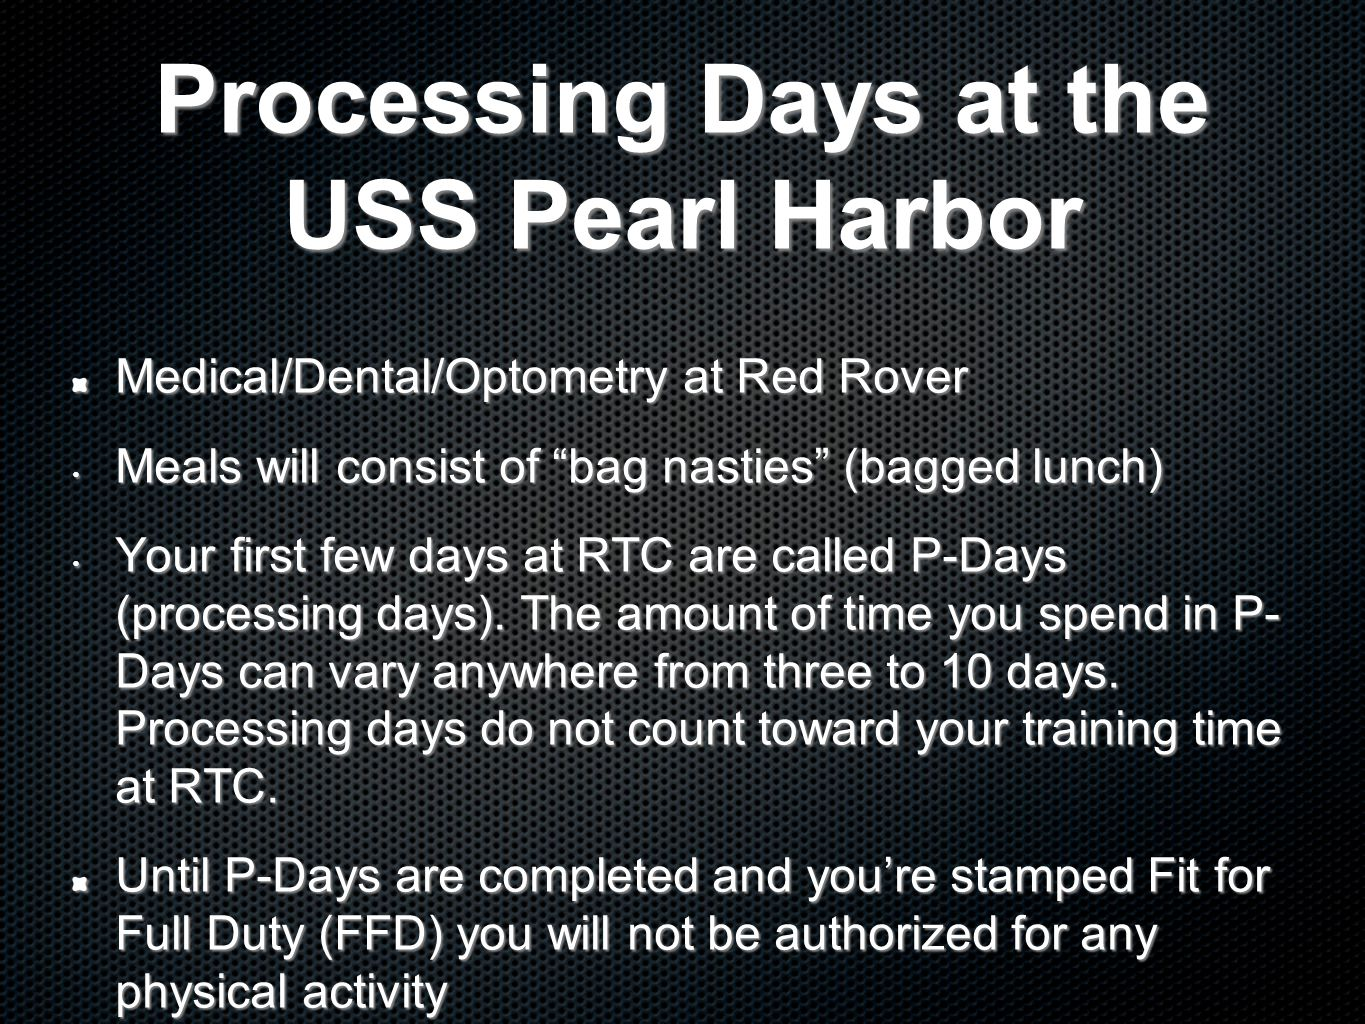 Processing Days at the USS Pearl Harbor